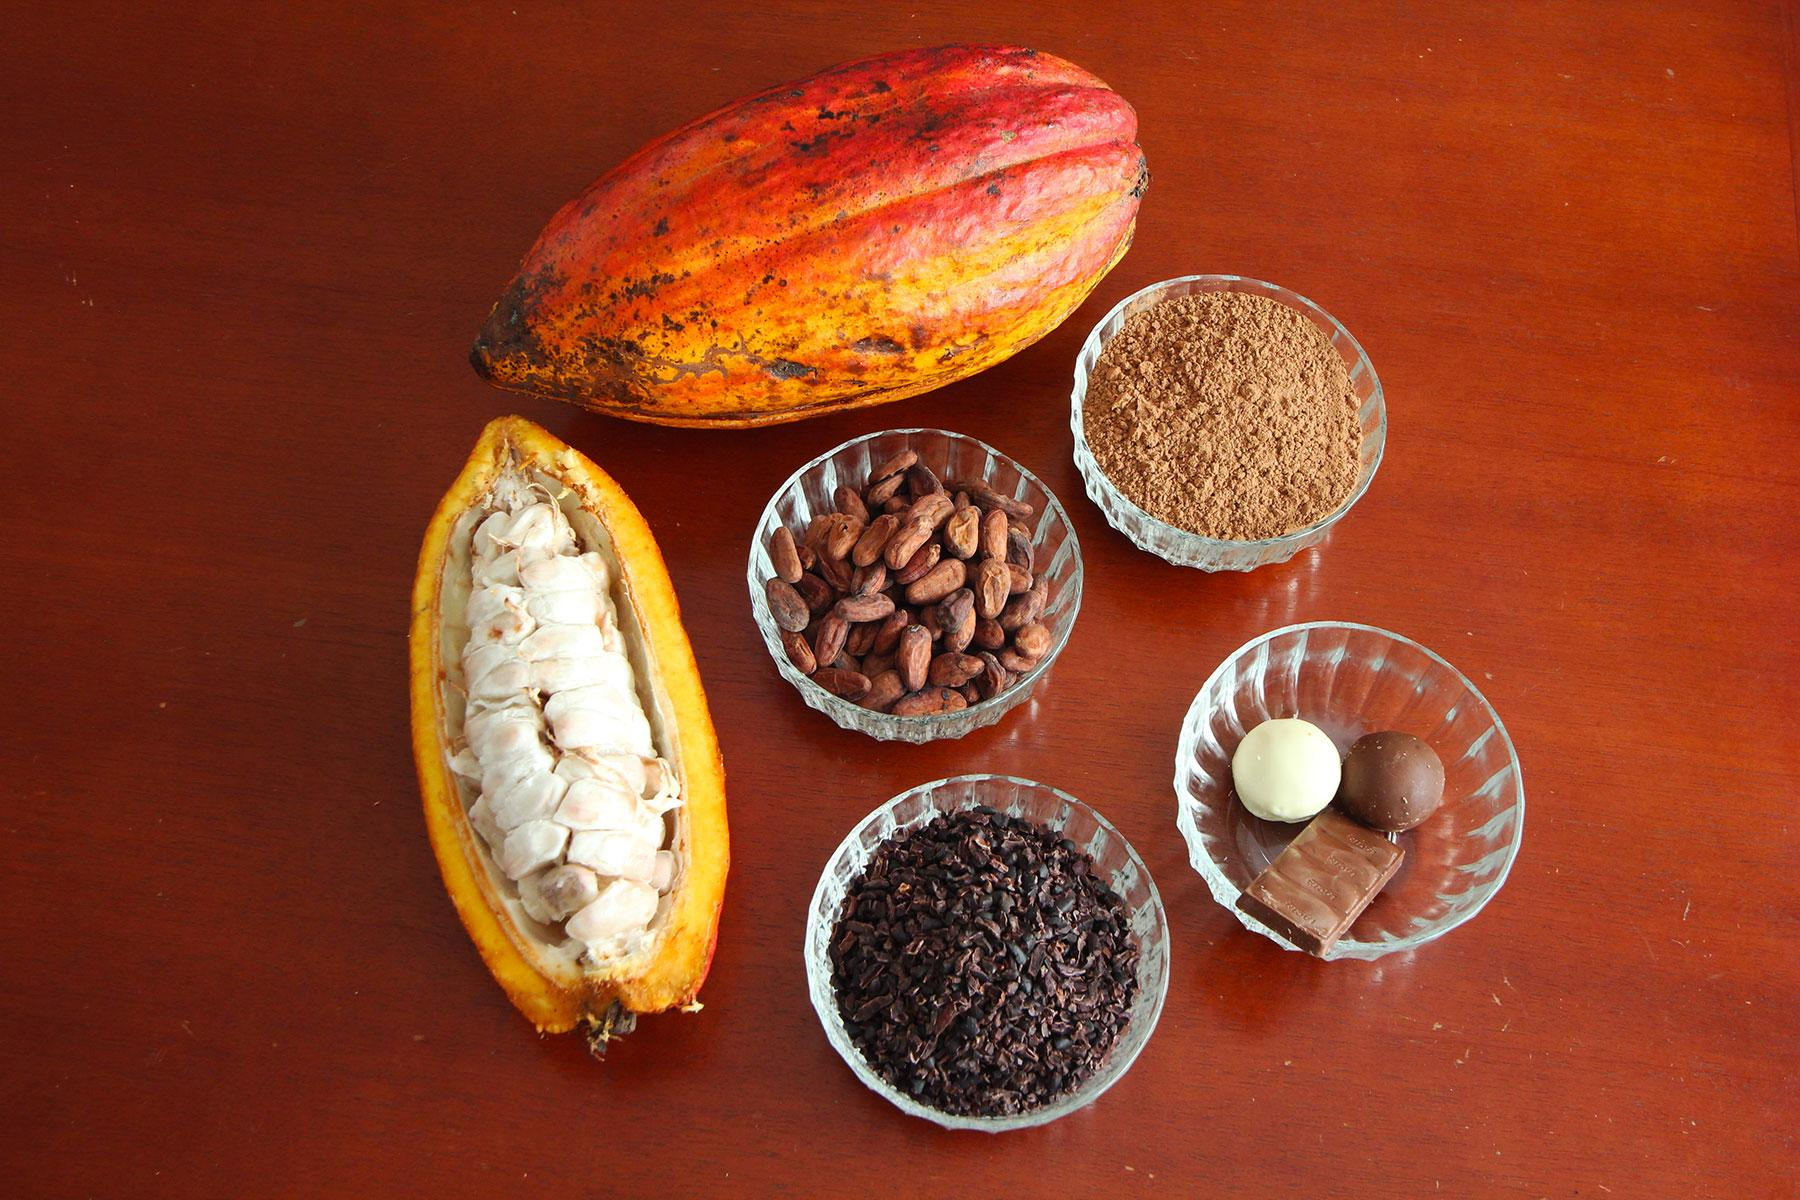 Ultimate-Things-To-Do-St-Lucia-Watch-Cocoa-Pods-Become-Chocolate-Bars-02.jpg